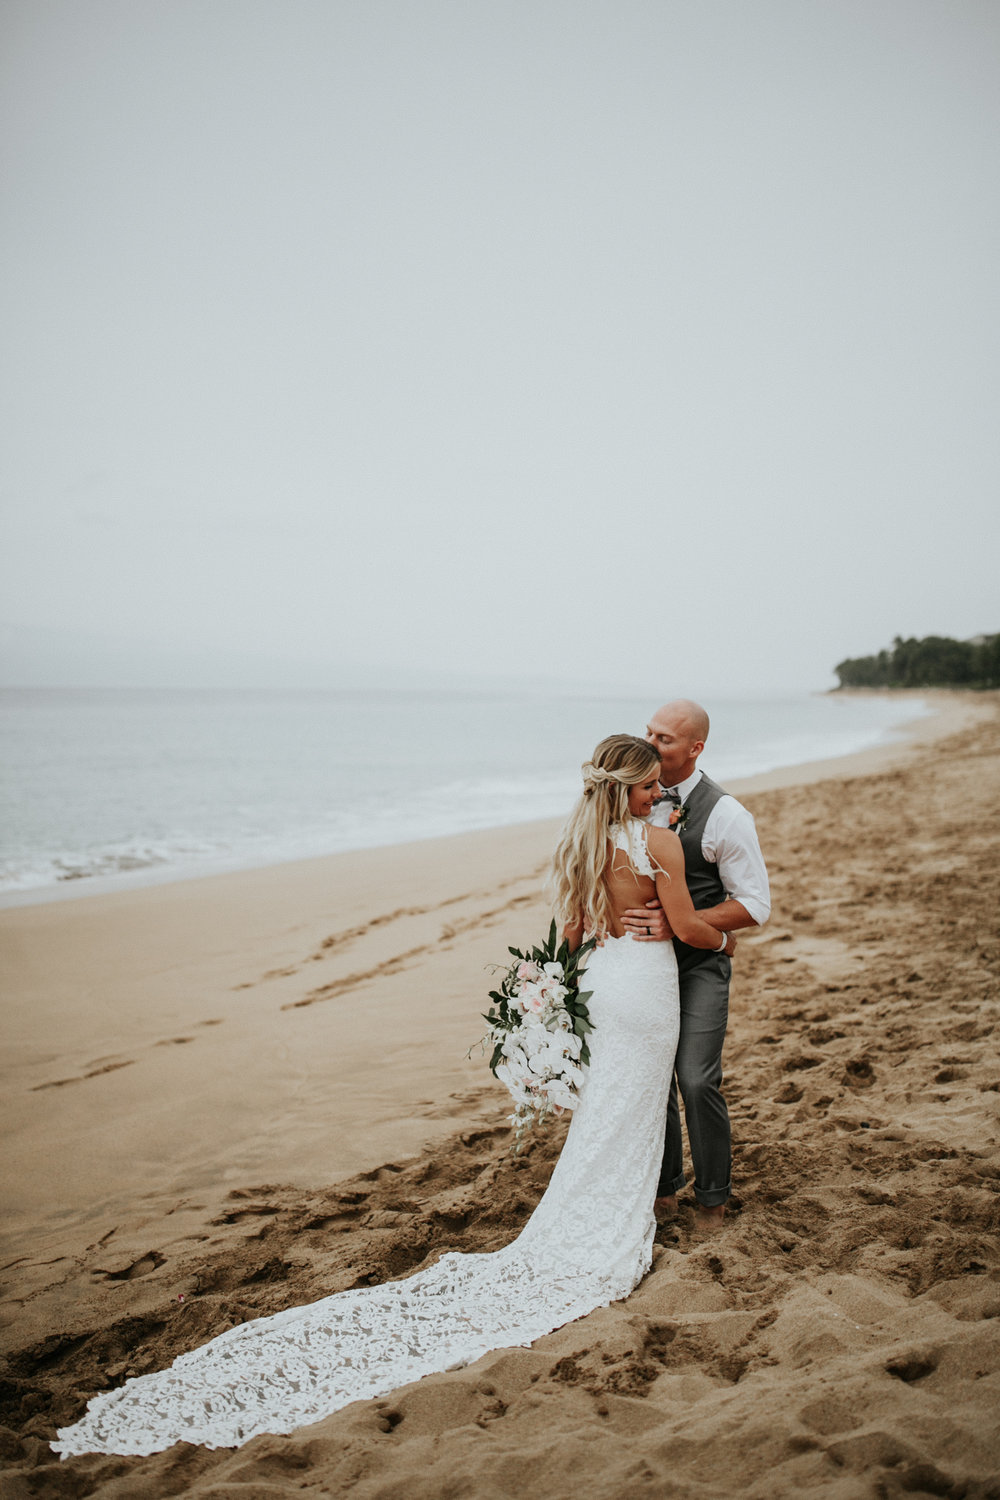 destination-wedding-photographer-hawaii-maui-elopement-87.jpg